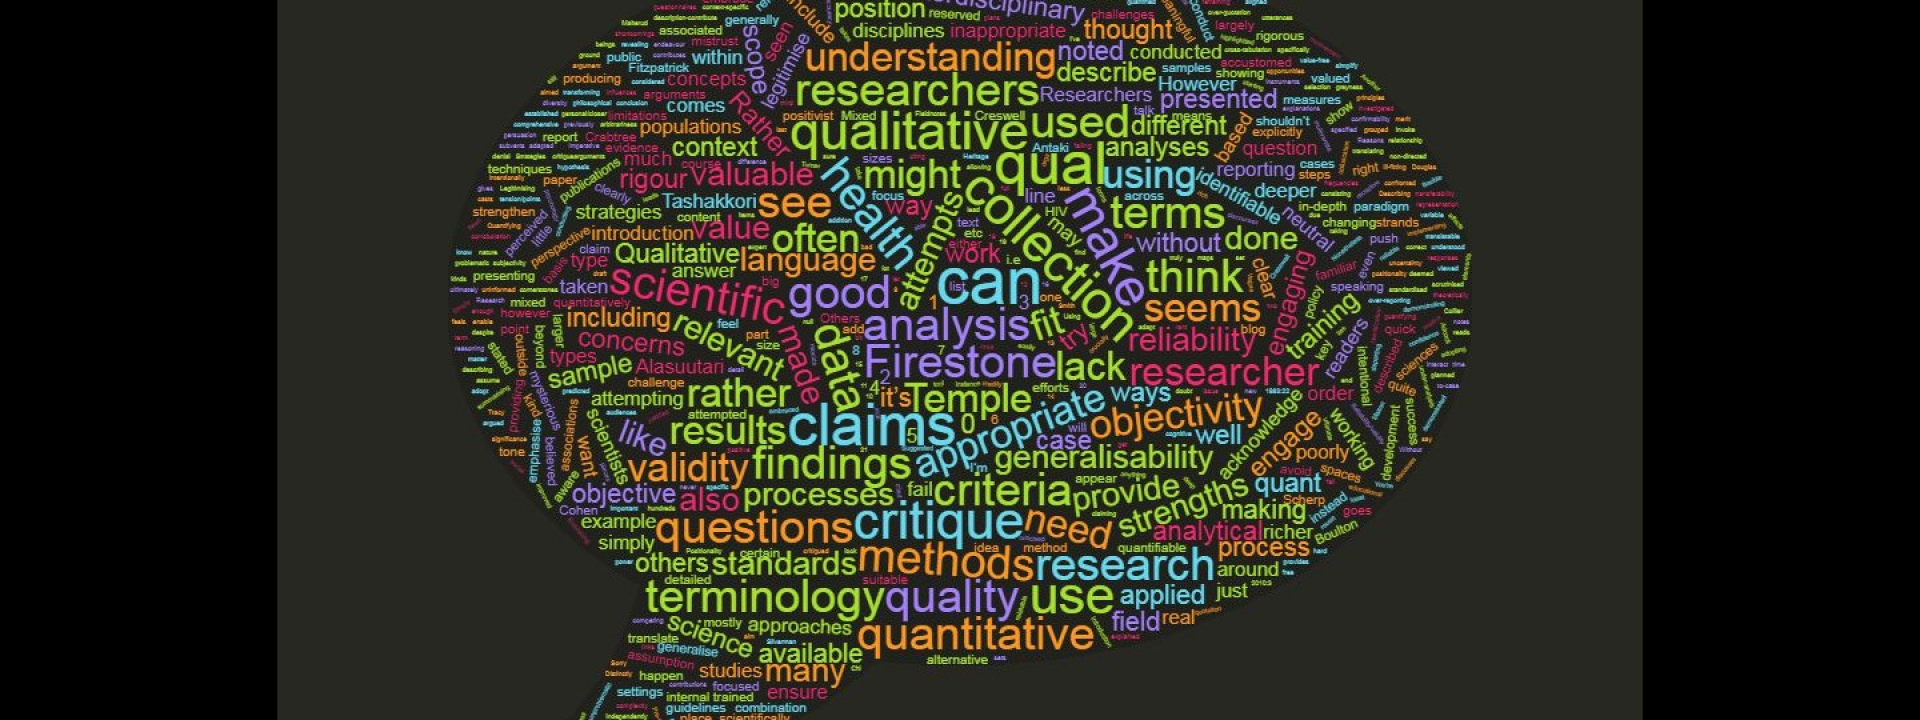 Beyond the Numbers: Why Qualitative Data Should Not Be Used to Make Quantifying Claims